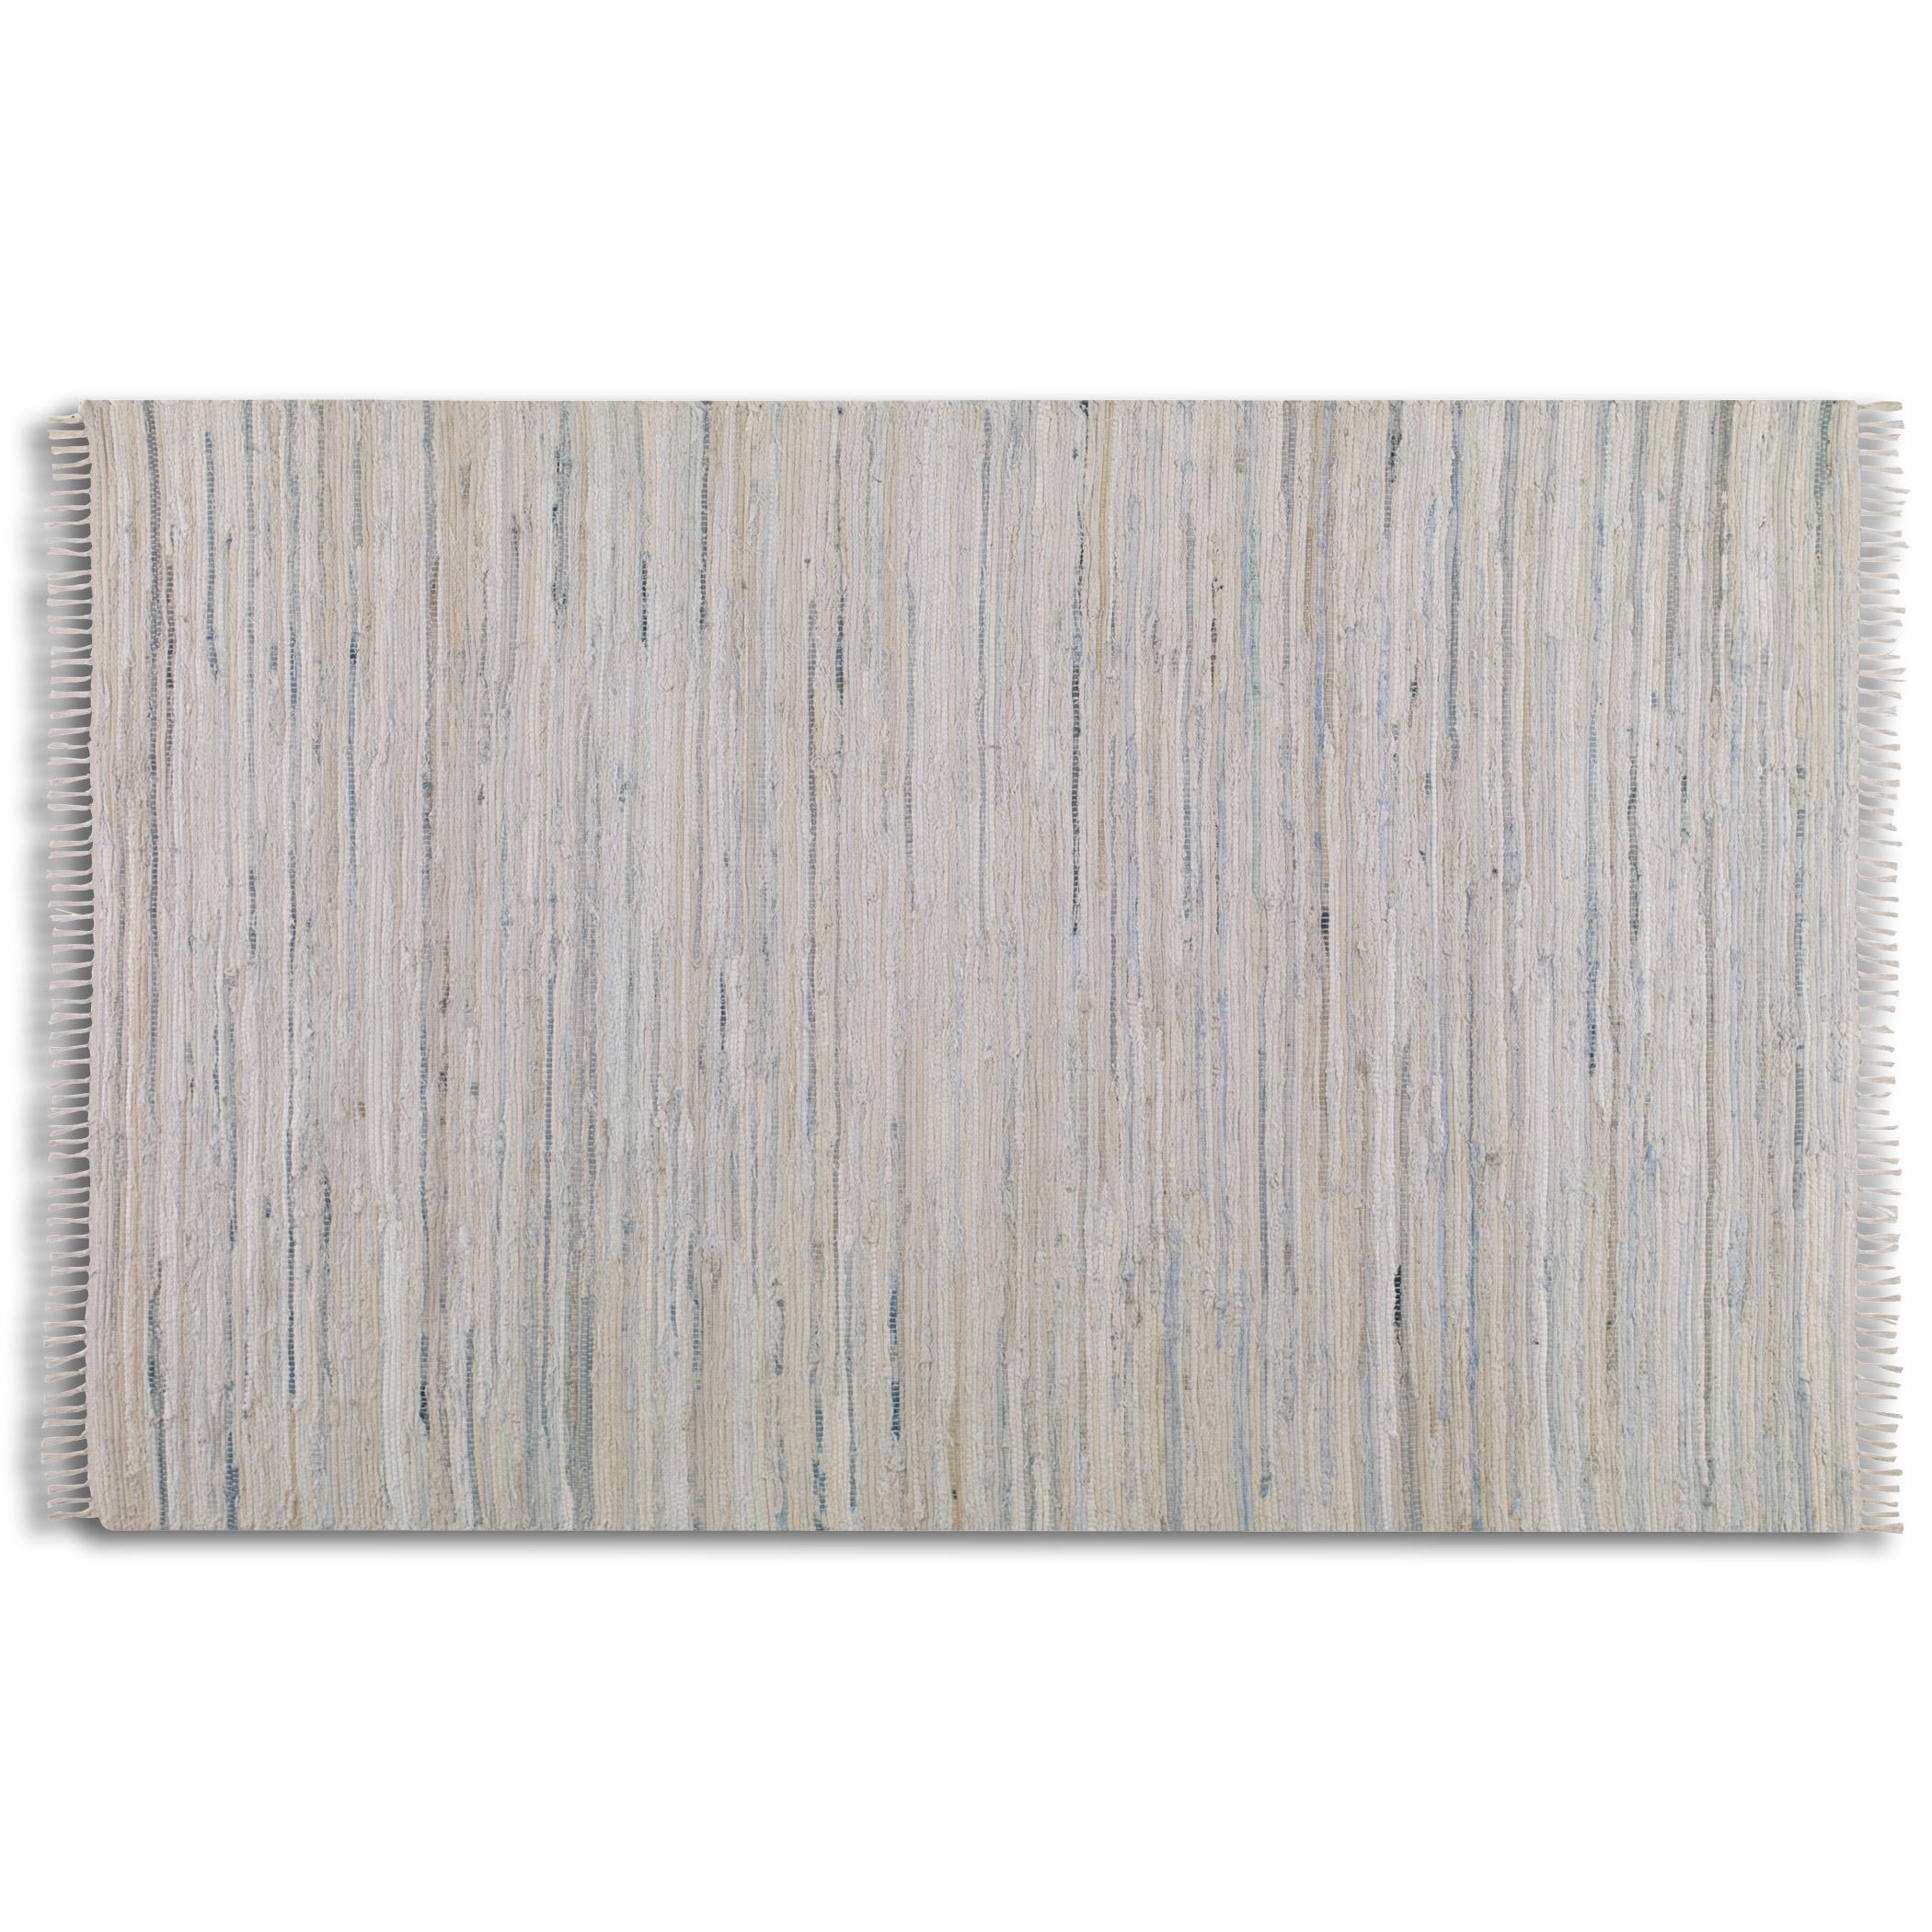 Uttermost Rugs Stockton 8 X 10 Rug - White - Item Number: 71056-8